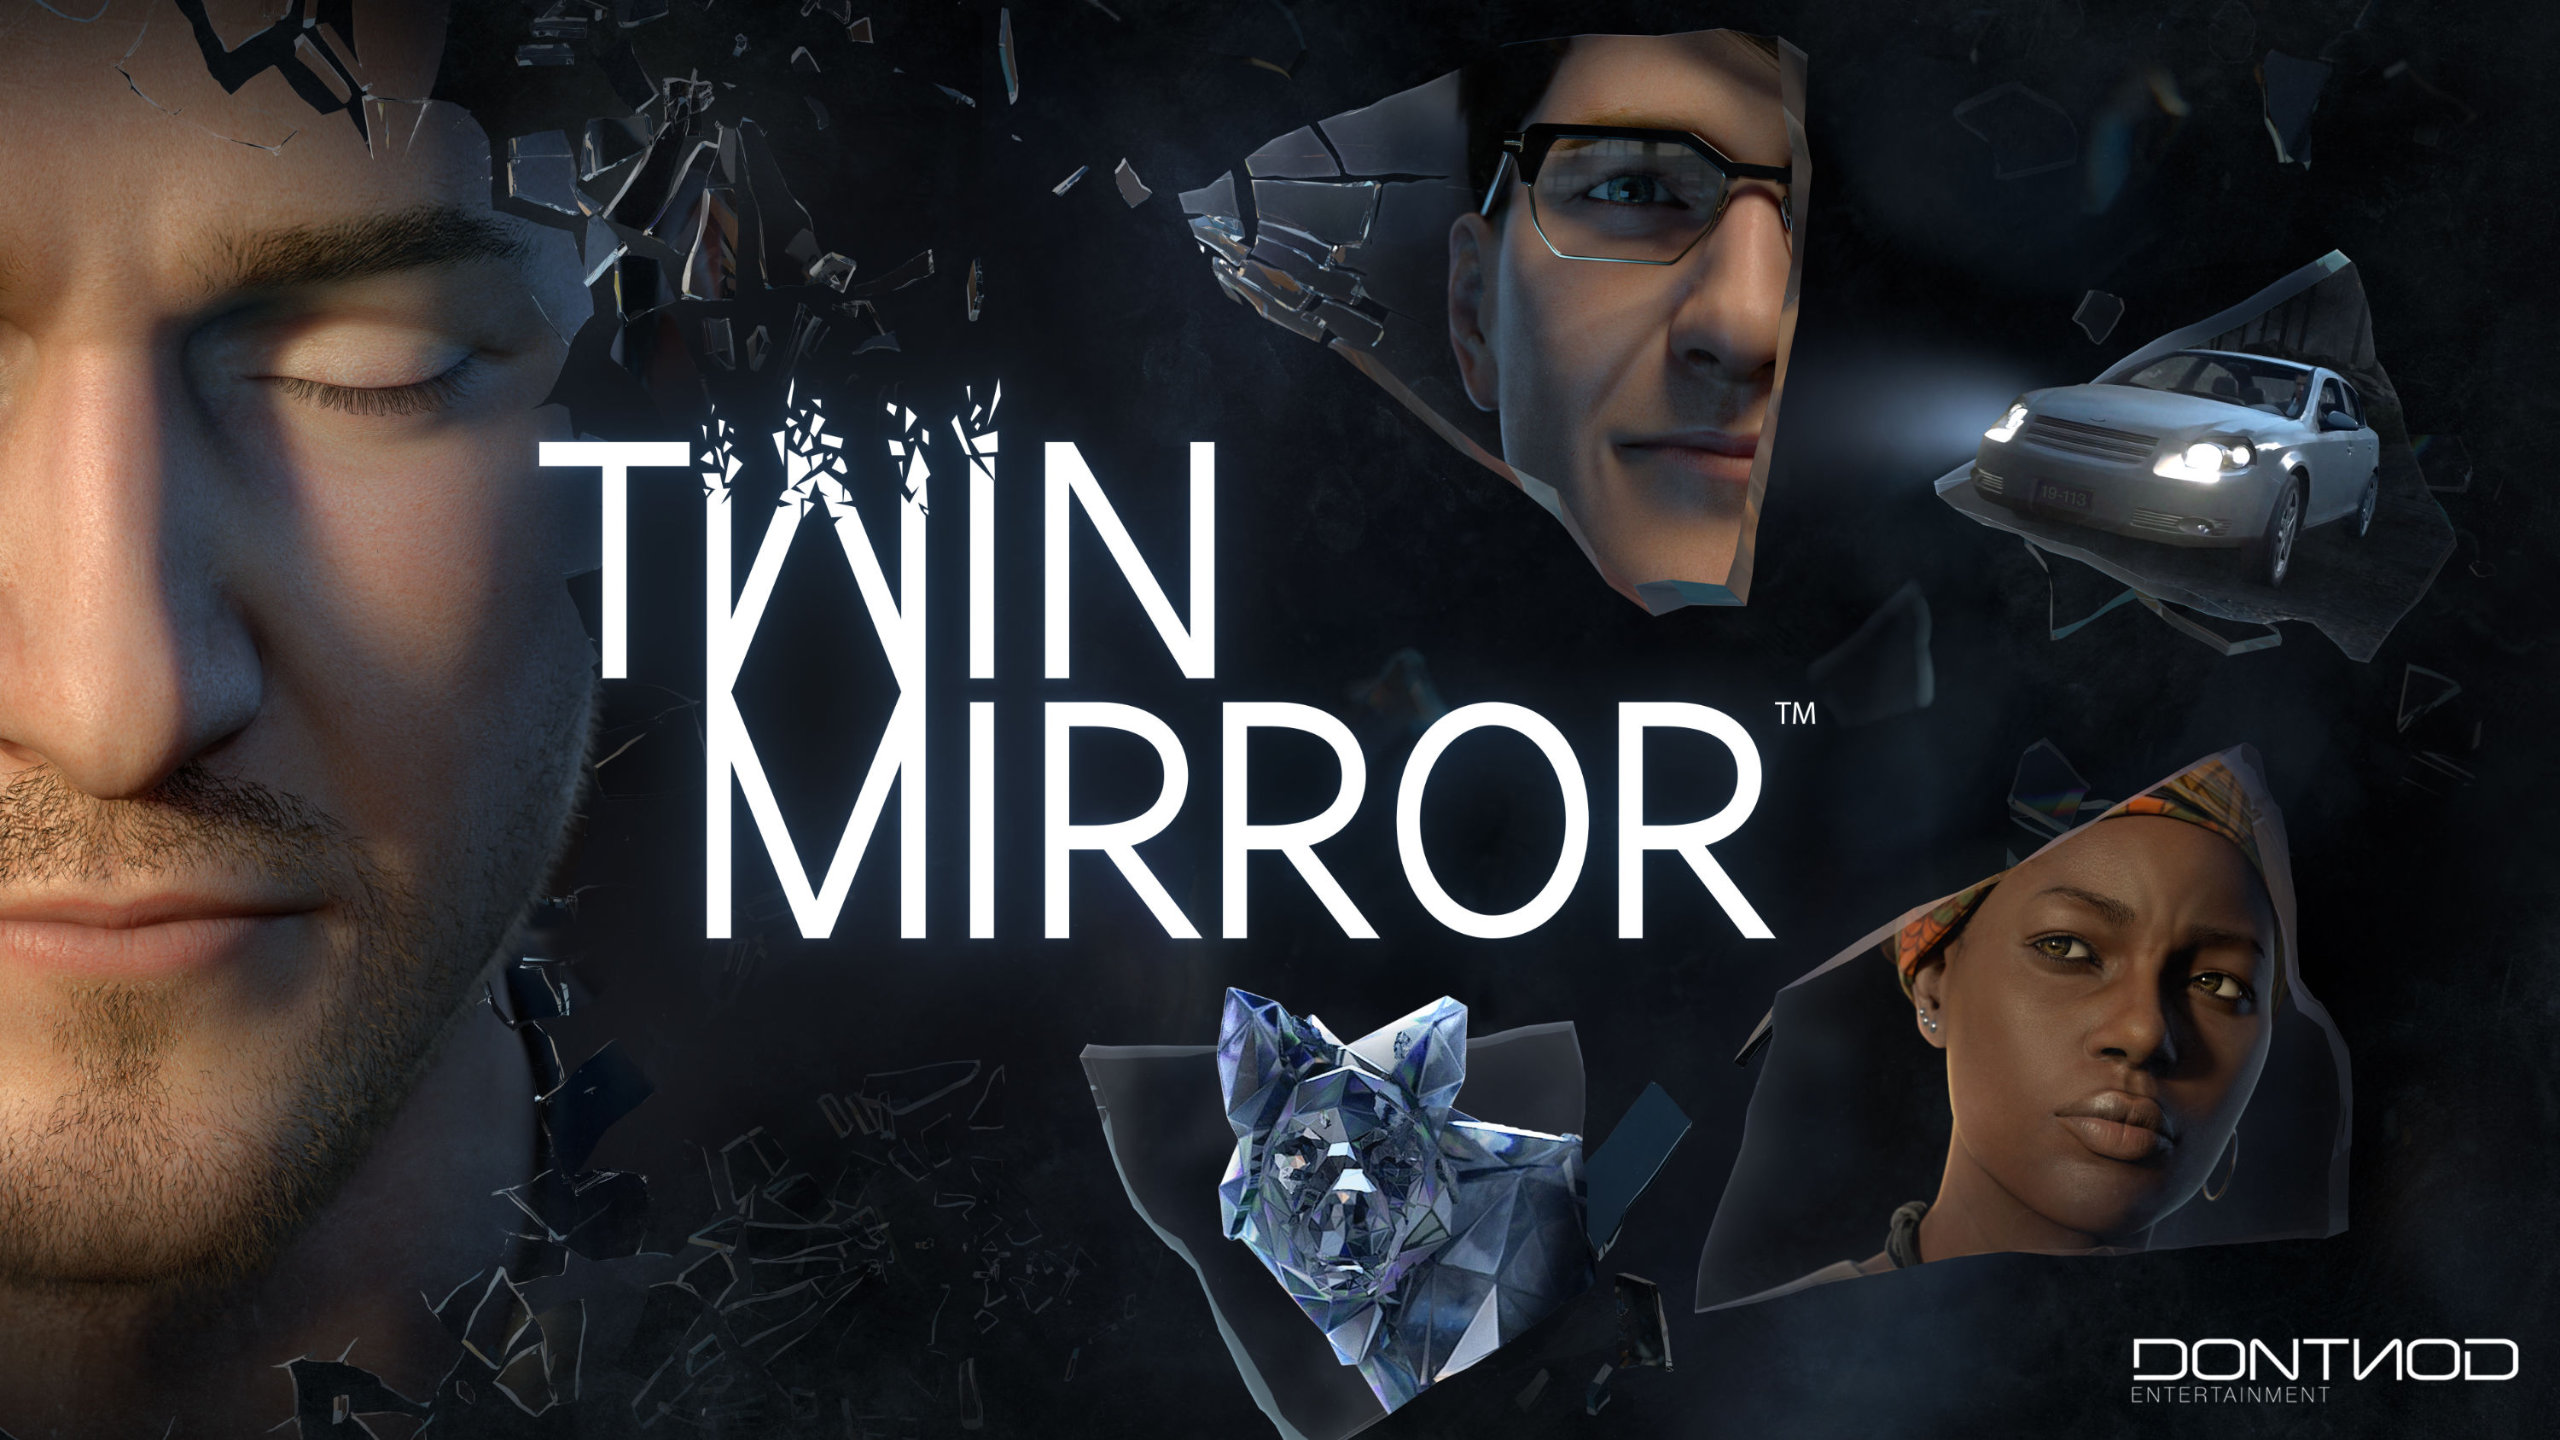 Twin Mirror artwork depicting multiple characters' faces and a white car as reflections in shards of glass